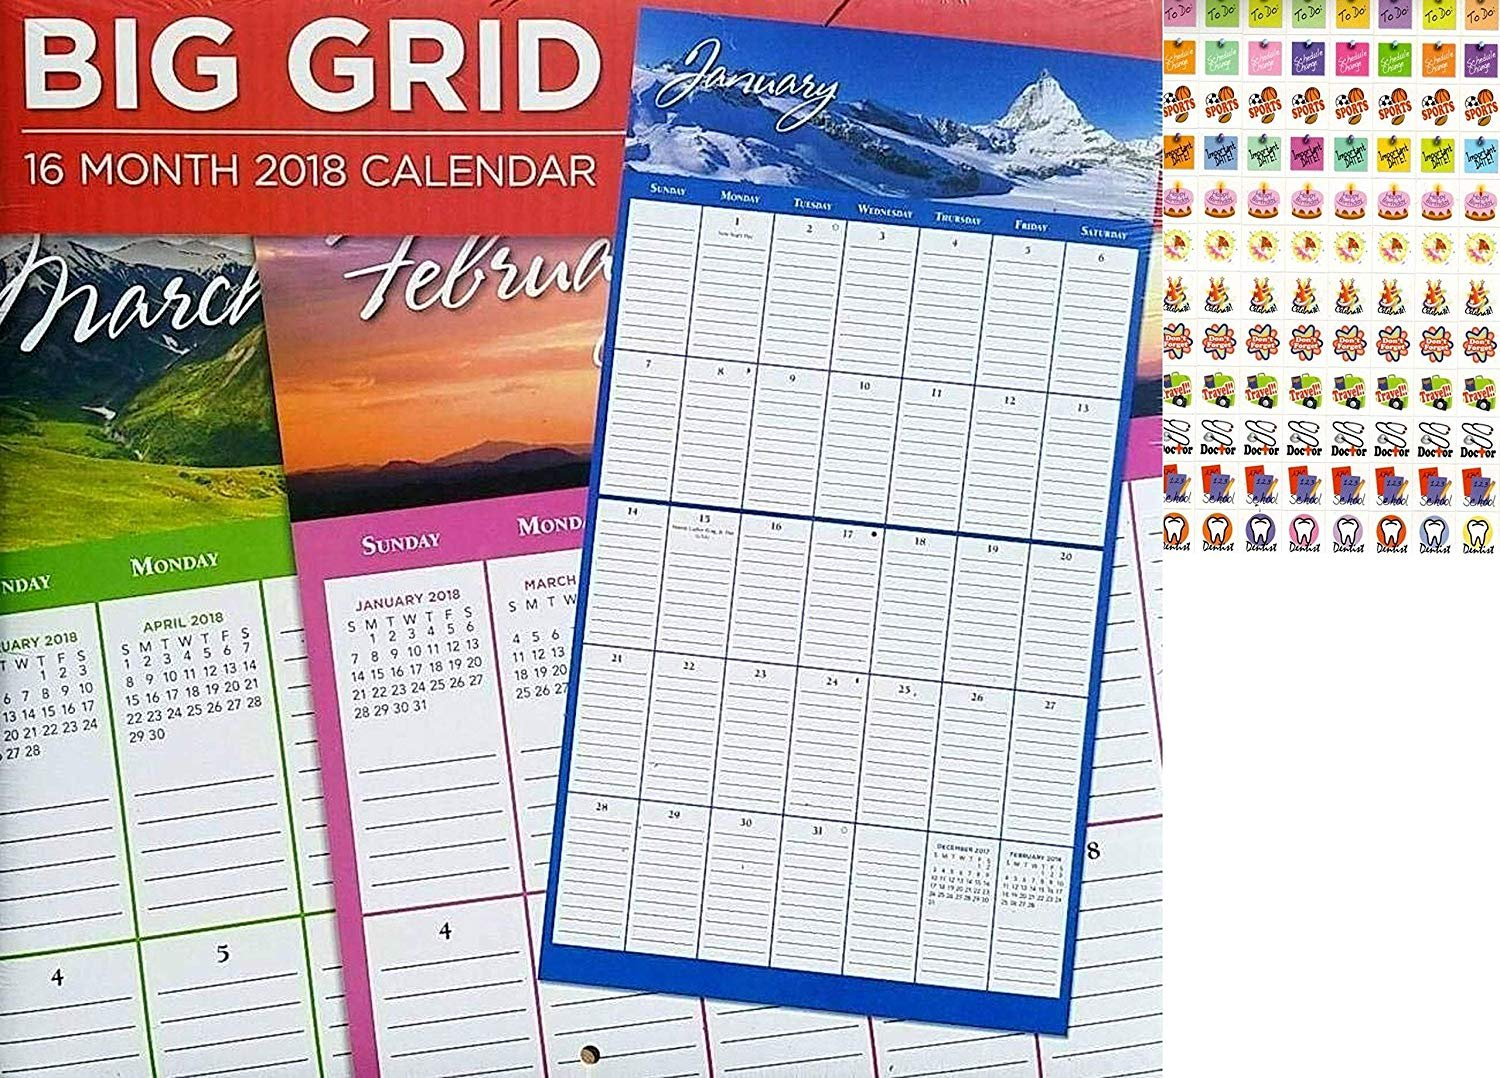 16 Month 2019 Wall Calendar - Big Grid - Each Month Displays Full-Color Photograph + 120 Stickers